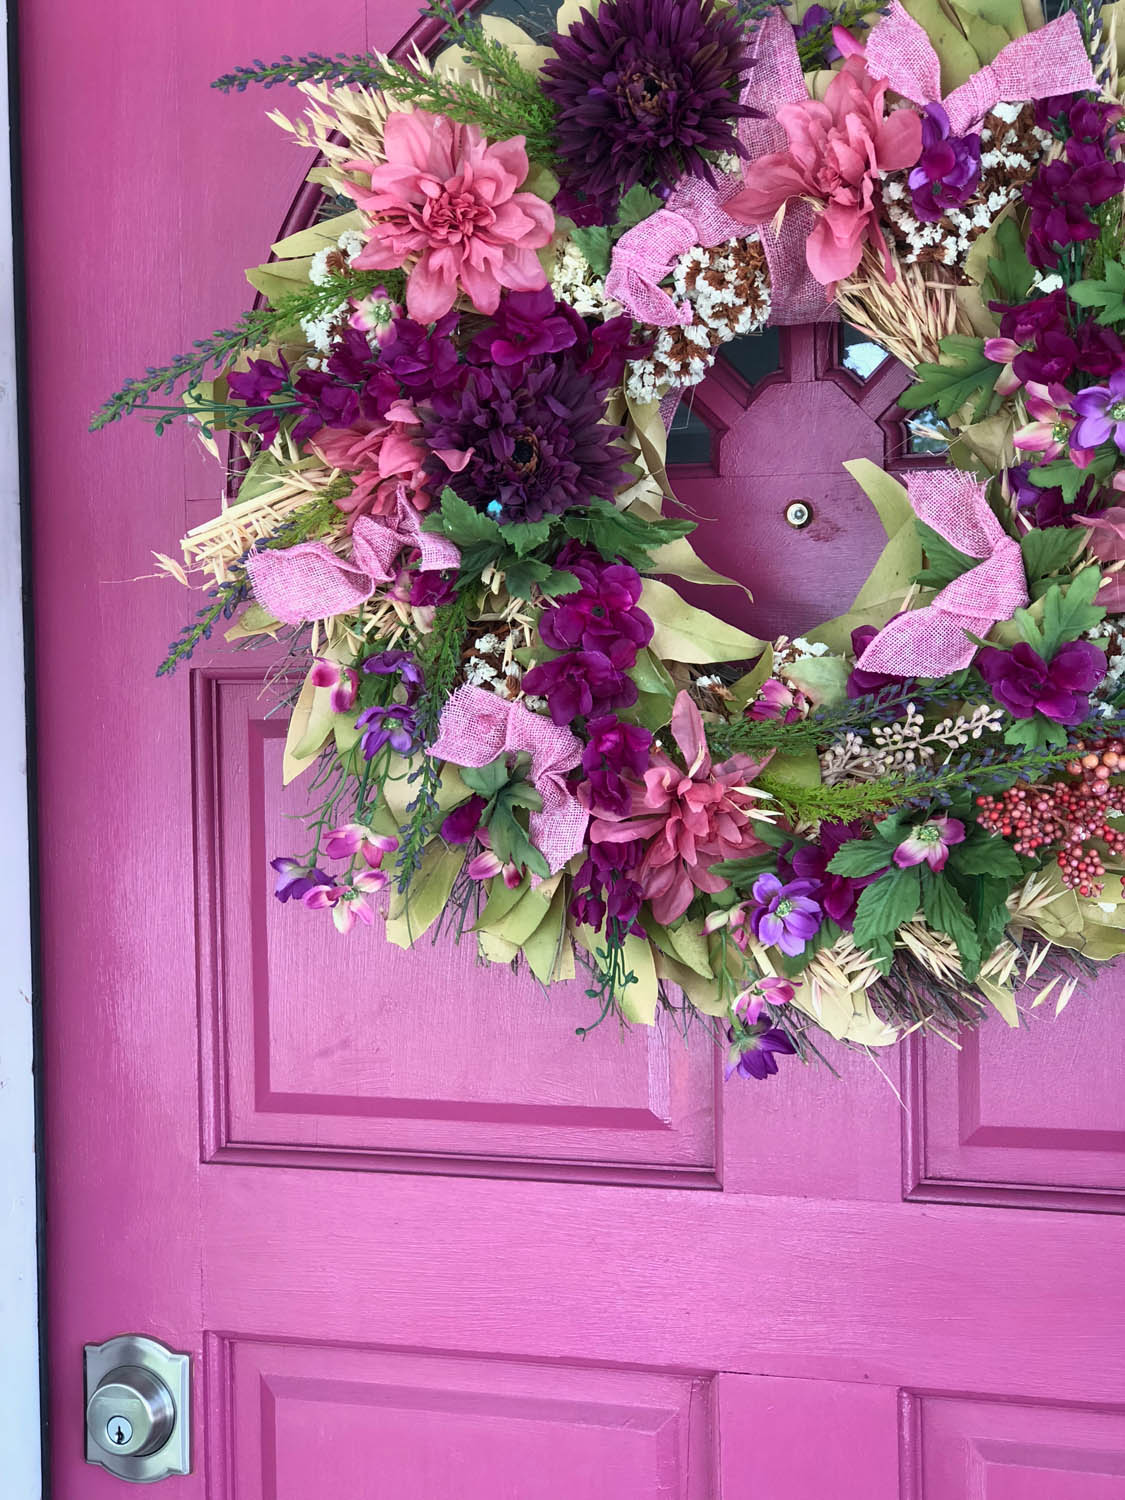 finished DIY upcycled spring wreath with silk flowers on pink front door